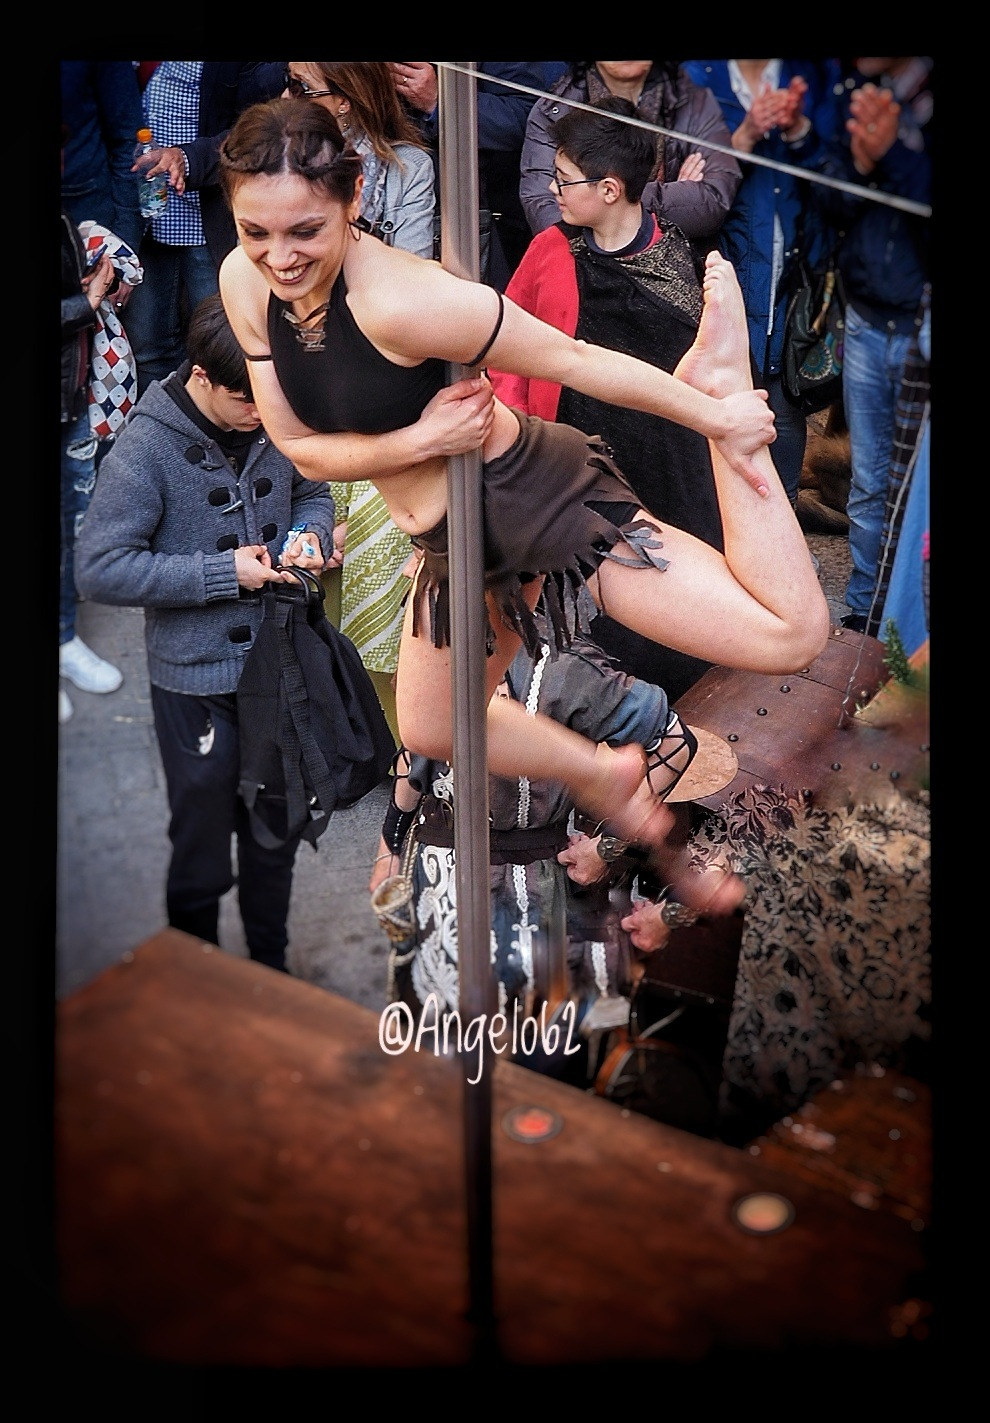 Pole dance  by Angelo62